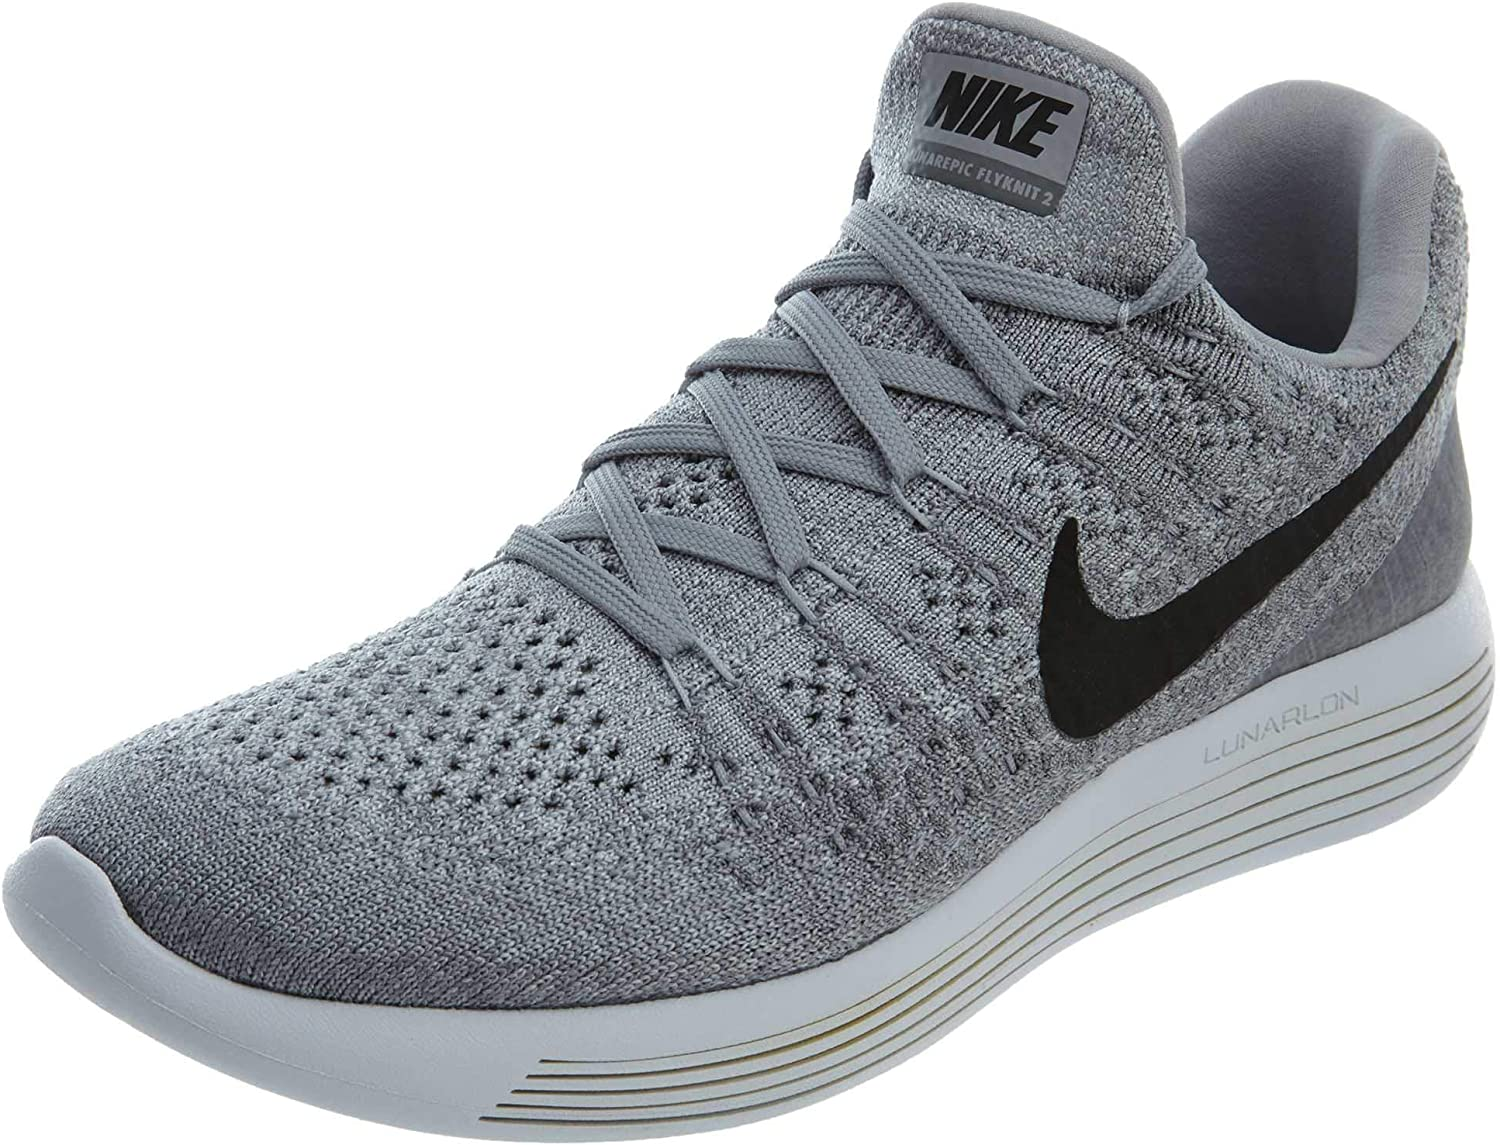 Nike Women s Lunarepic Low Flyknit 2 Running Shoe 9, Wolf Grey Cool Grey Pure Platinum Black